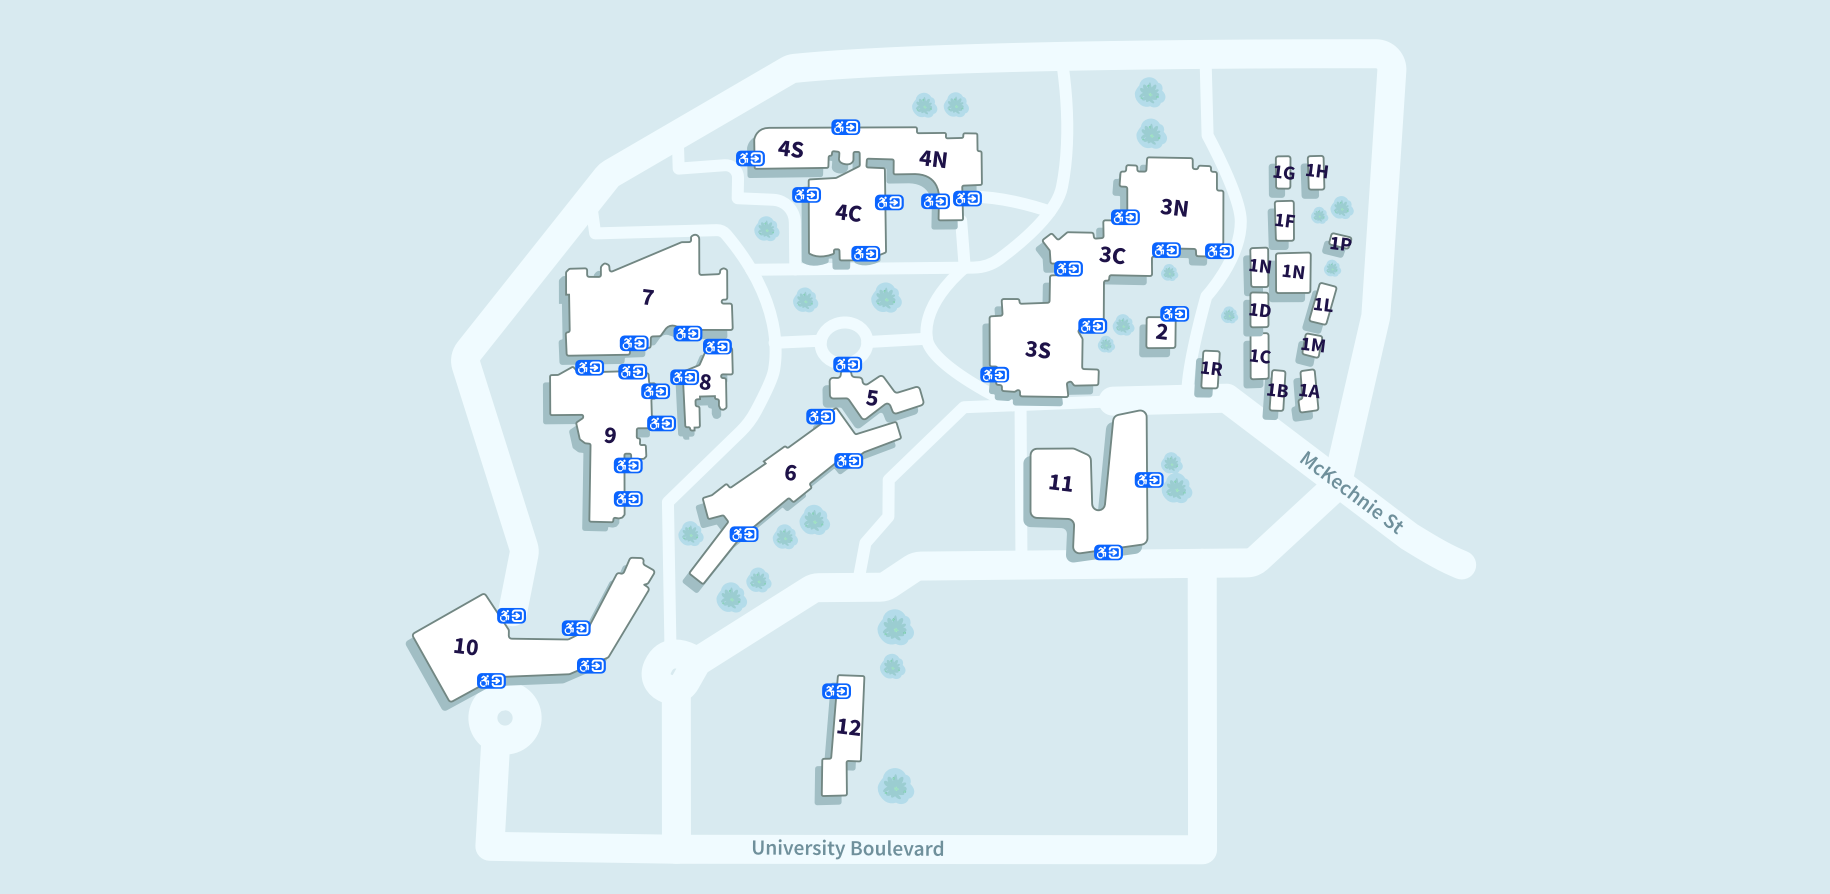 VU St Albans Campus map showing the buildings and their accessible entrances, from lowest number to highest: 1A, 1B, 1C, 1D, 1F, 1G, 1H, 1L, 1M, 1R, 1P, 2, 3S, 3C, 3N, 4S, 4C, 4N, 5, 6, 7, 8, 9, 10, 11. Building 1 has no accessible entrances shown.